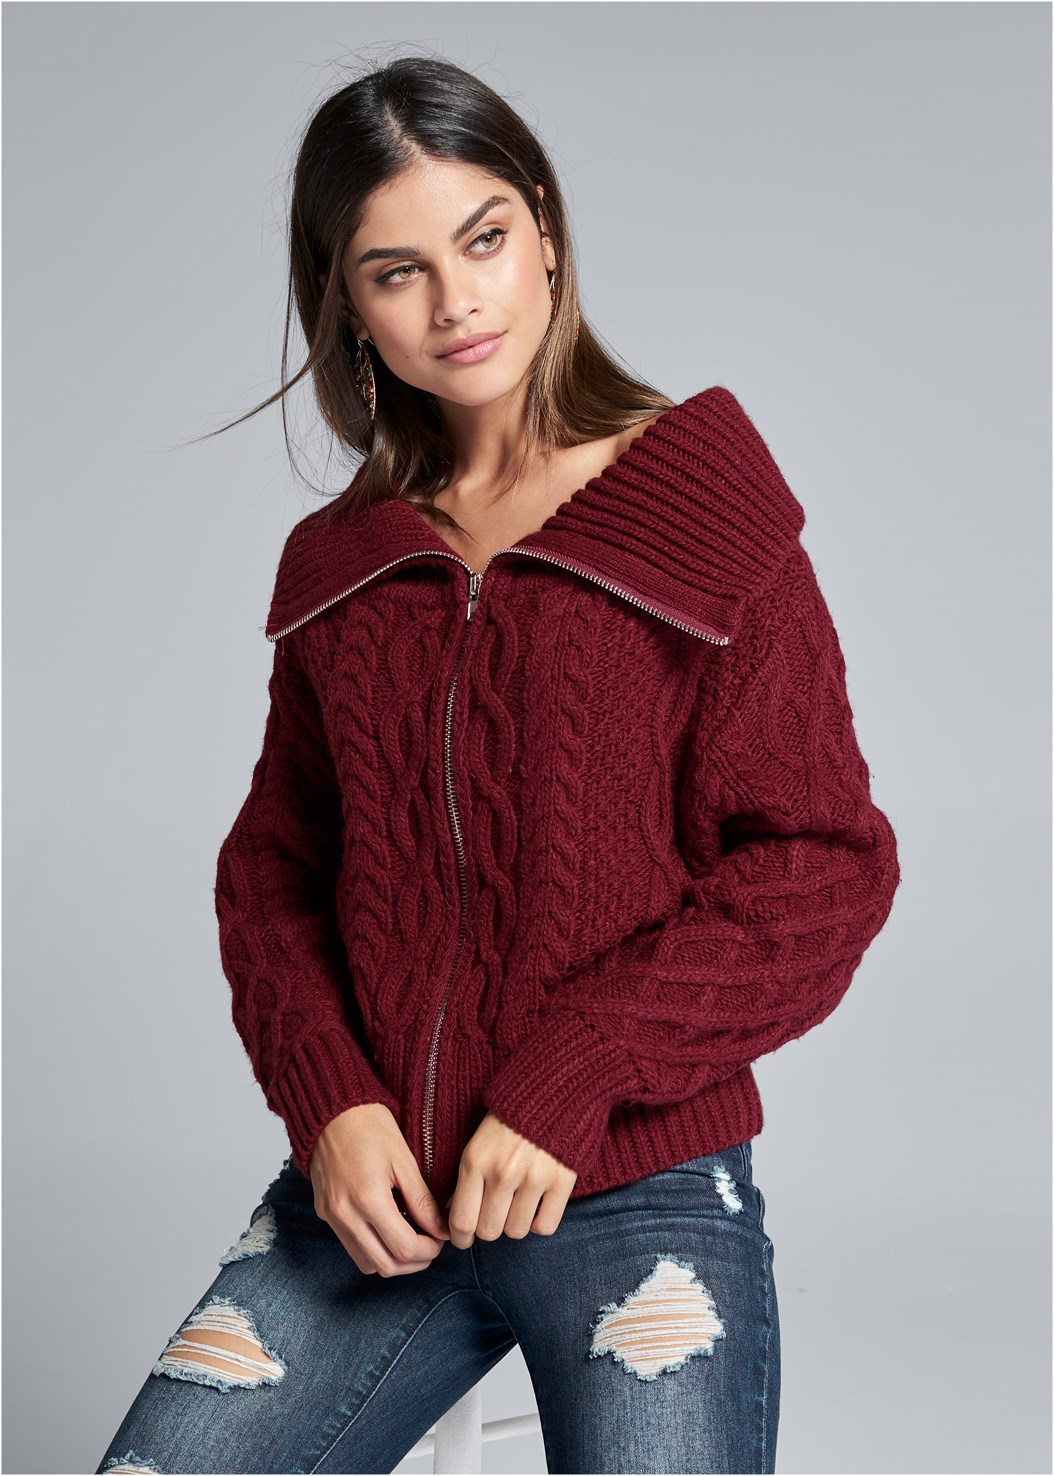 Zip Front Cable Knit Cardigan,Ripped Skinny Jeans,Knee High Block Heel Boot